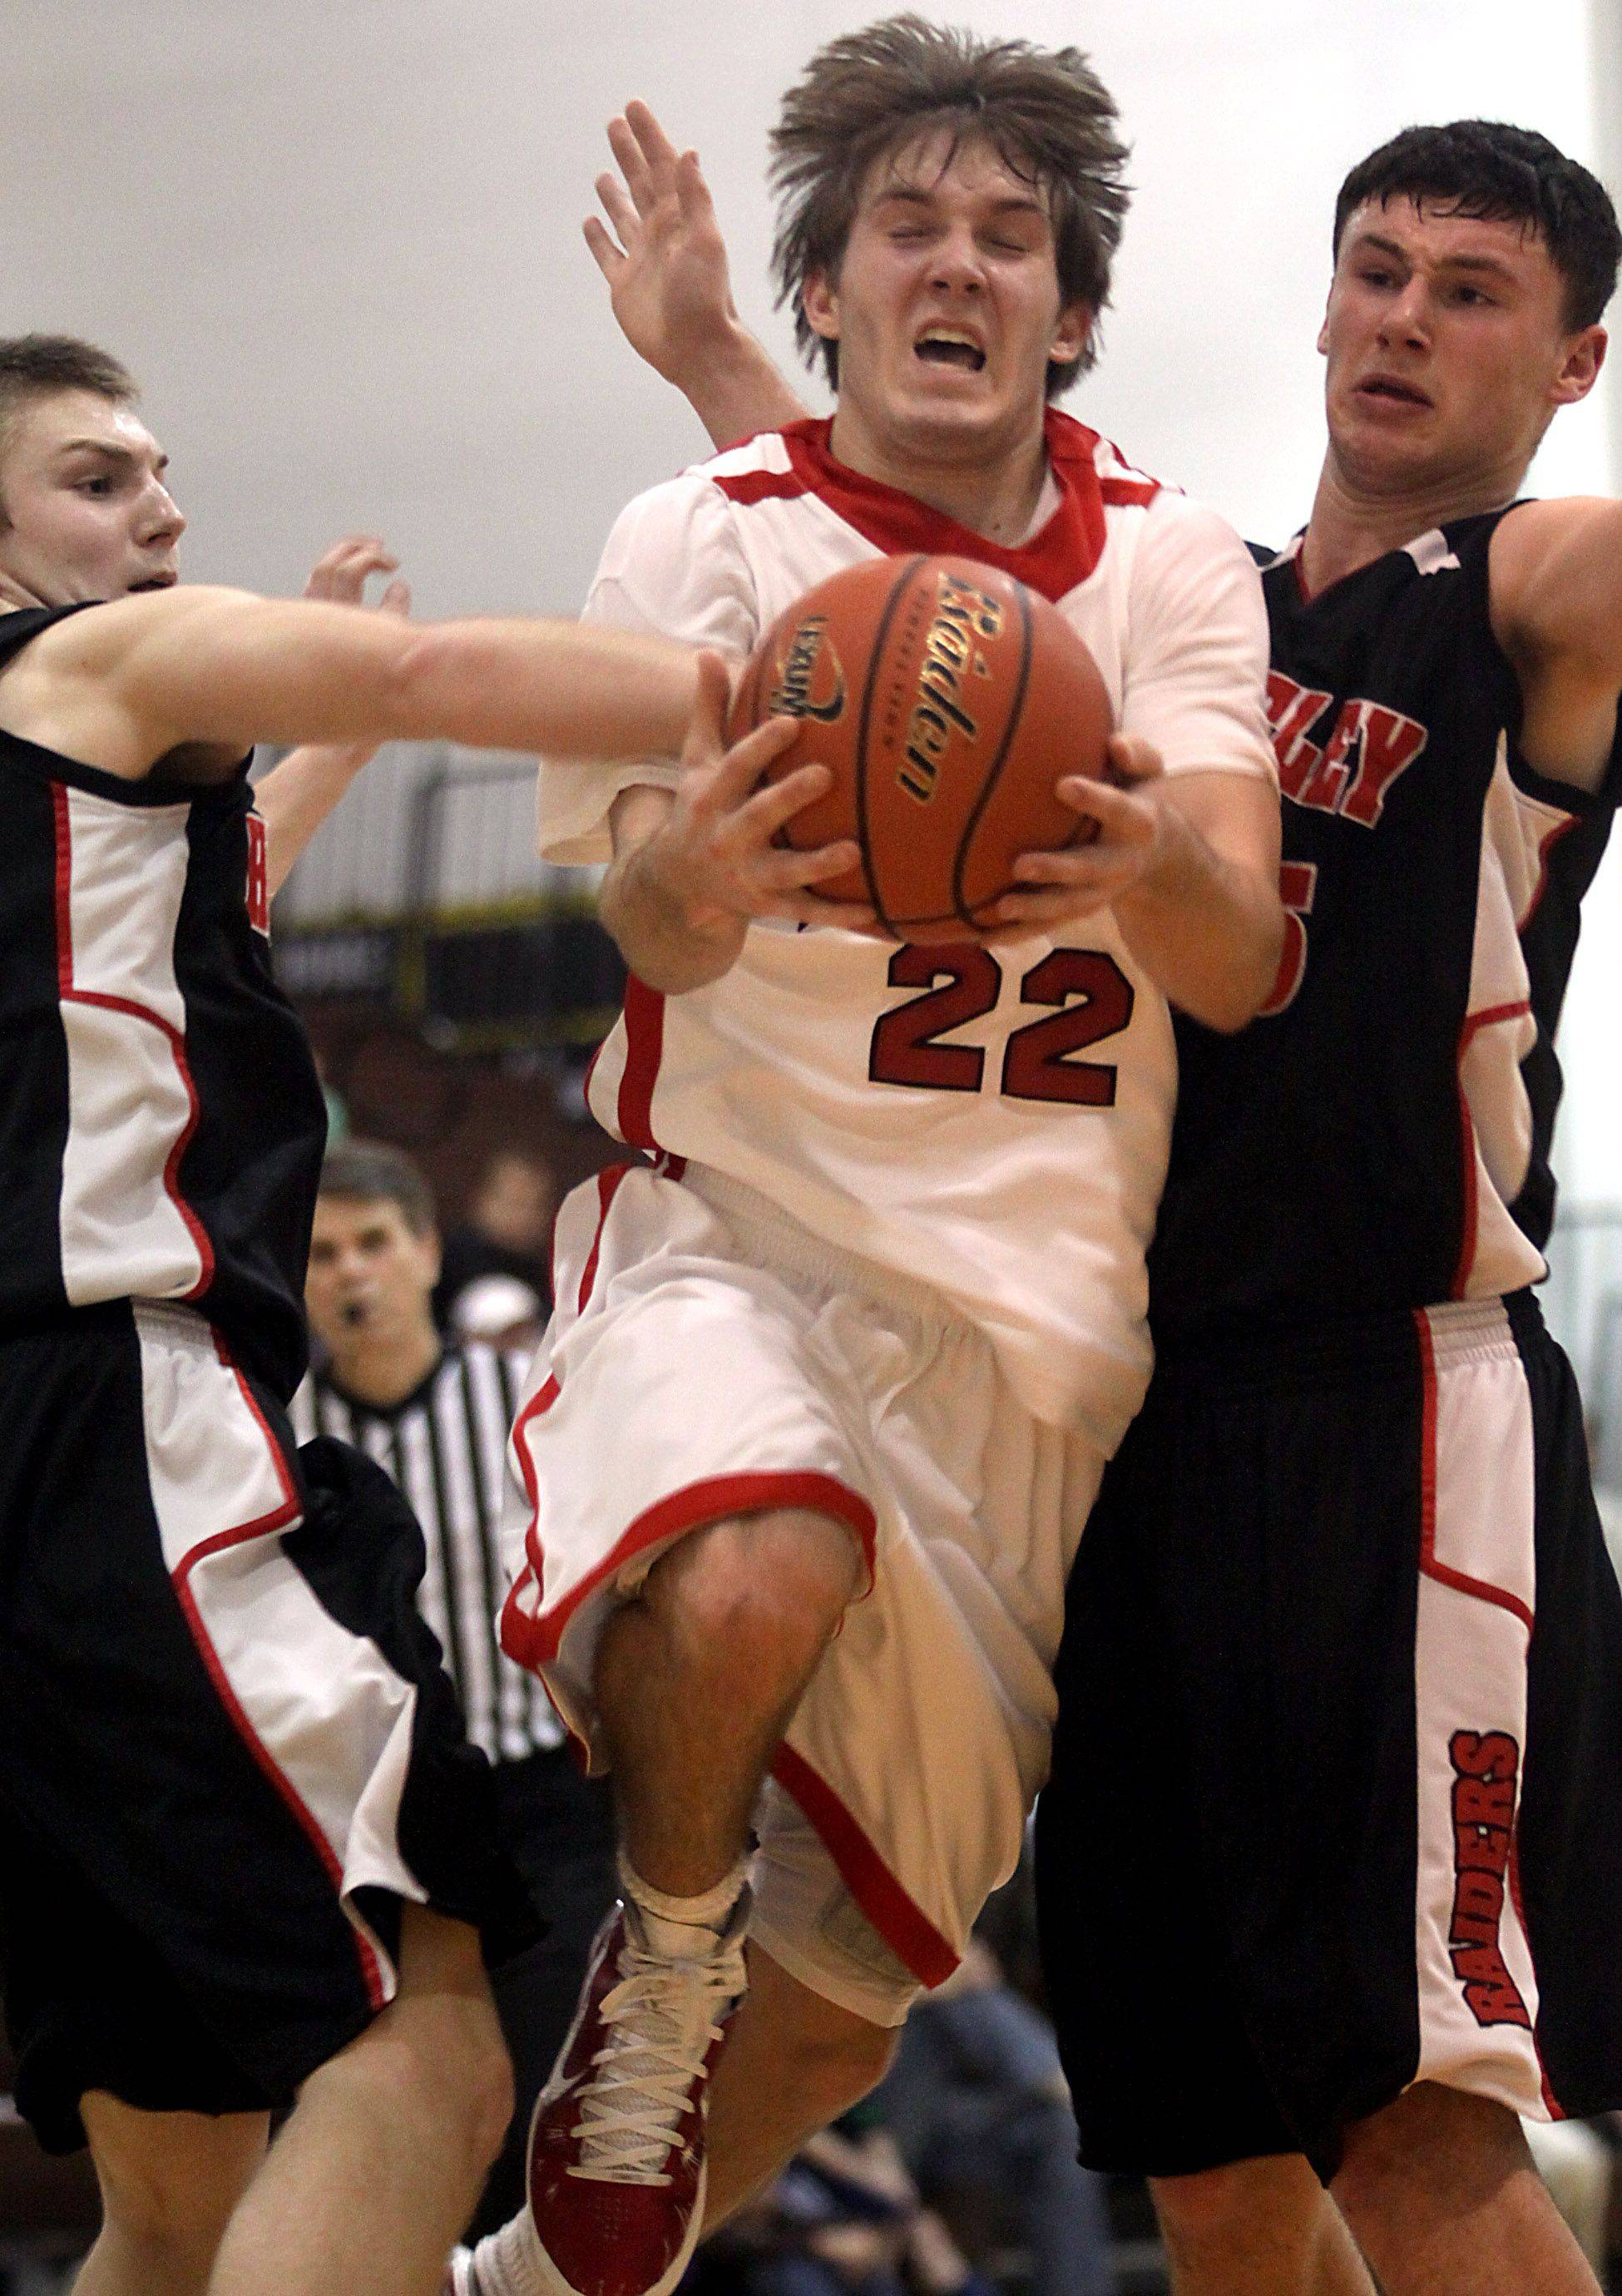 Robert Knar of Mundelein splits the Huntley defense on his way to the hoop during the title game of the Jacobs Holiday Classic Boys Basketball Tournament in Algonquin on Thursday night.